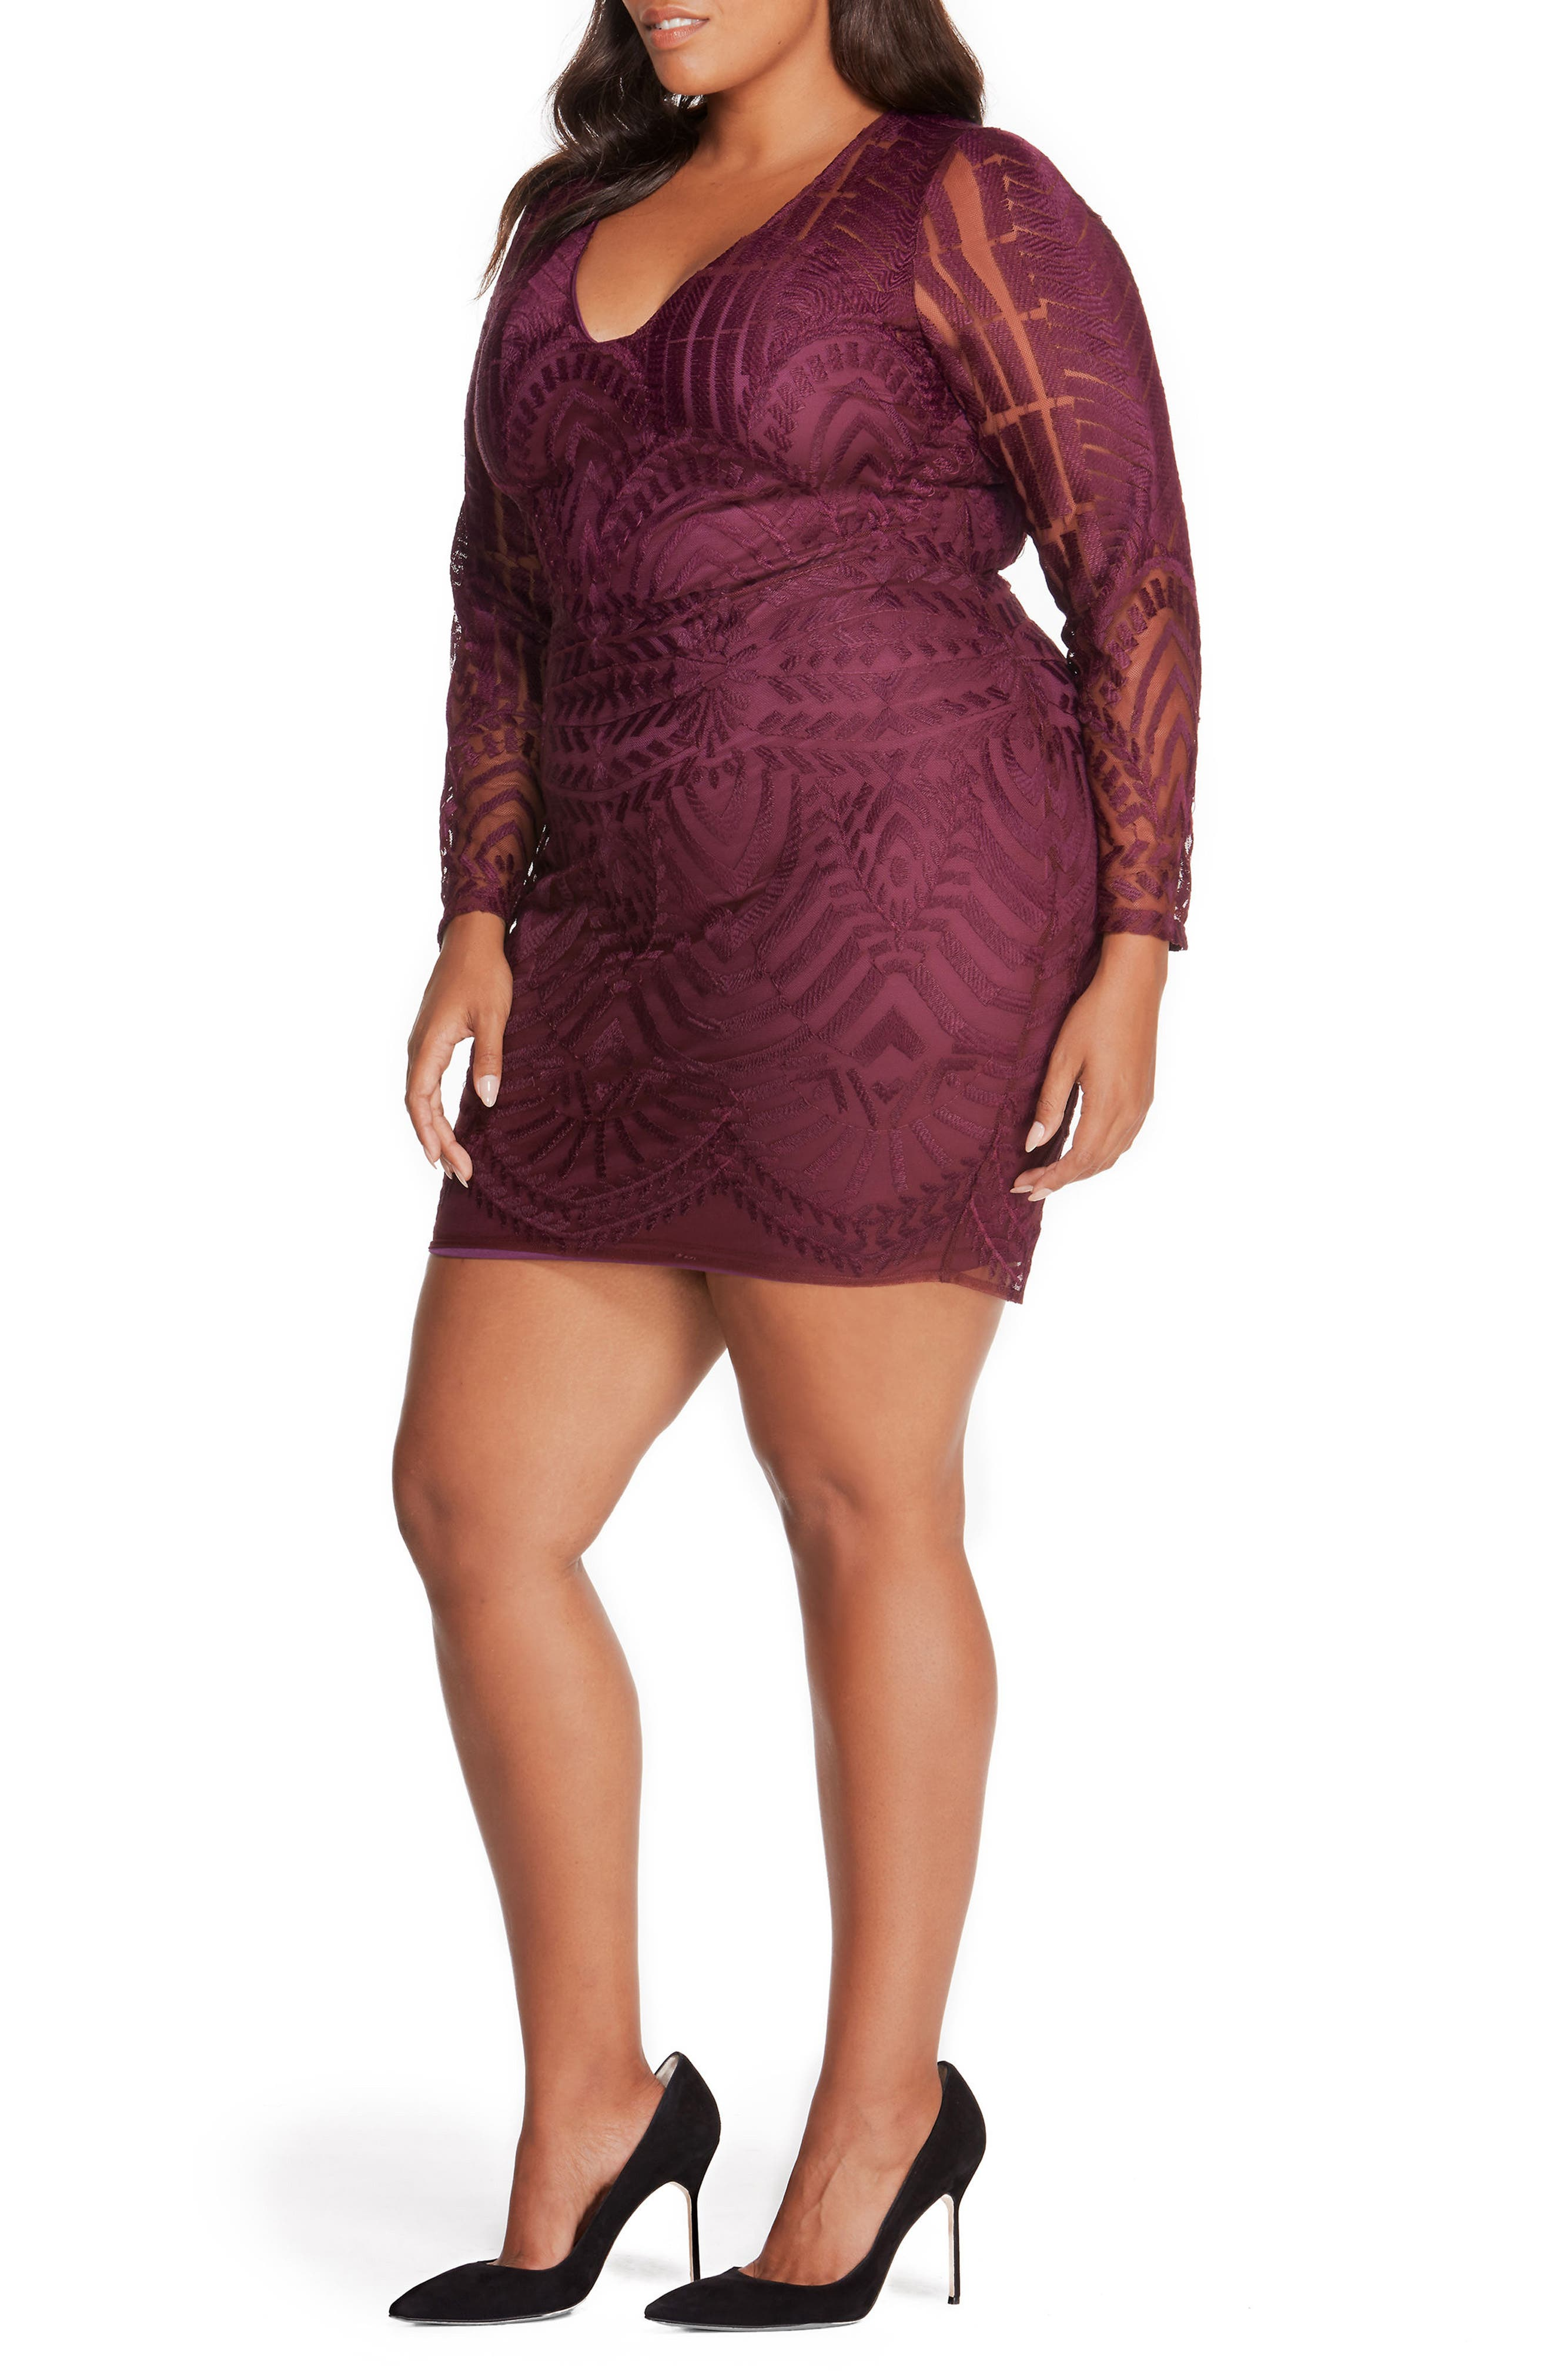 REBEL WILSON X ANGELS Embroidered Mesh Dress (Plus Size)